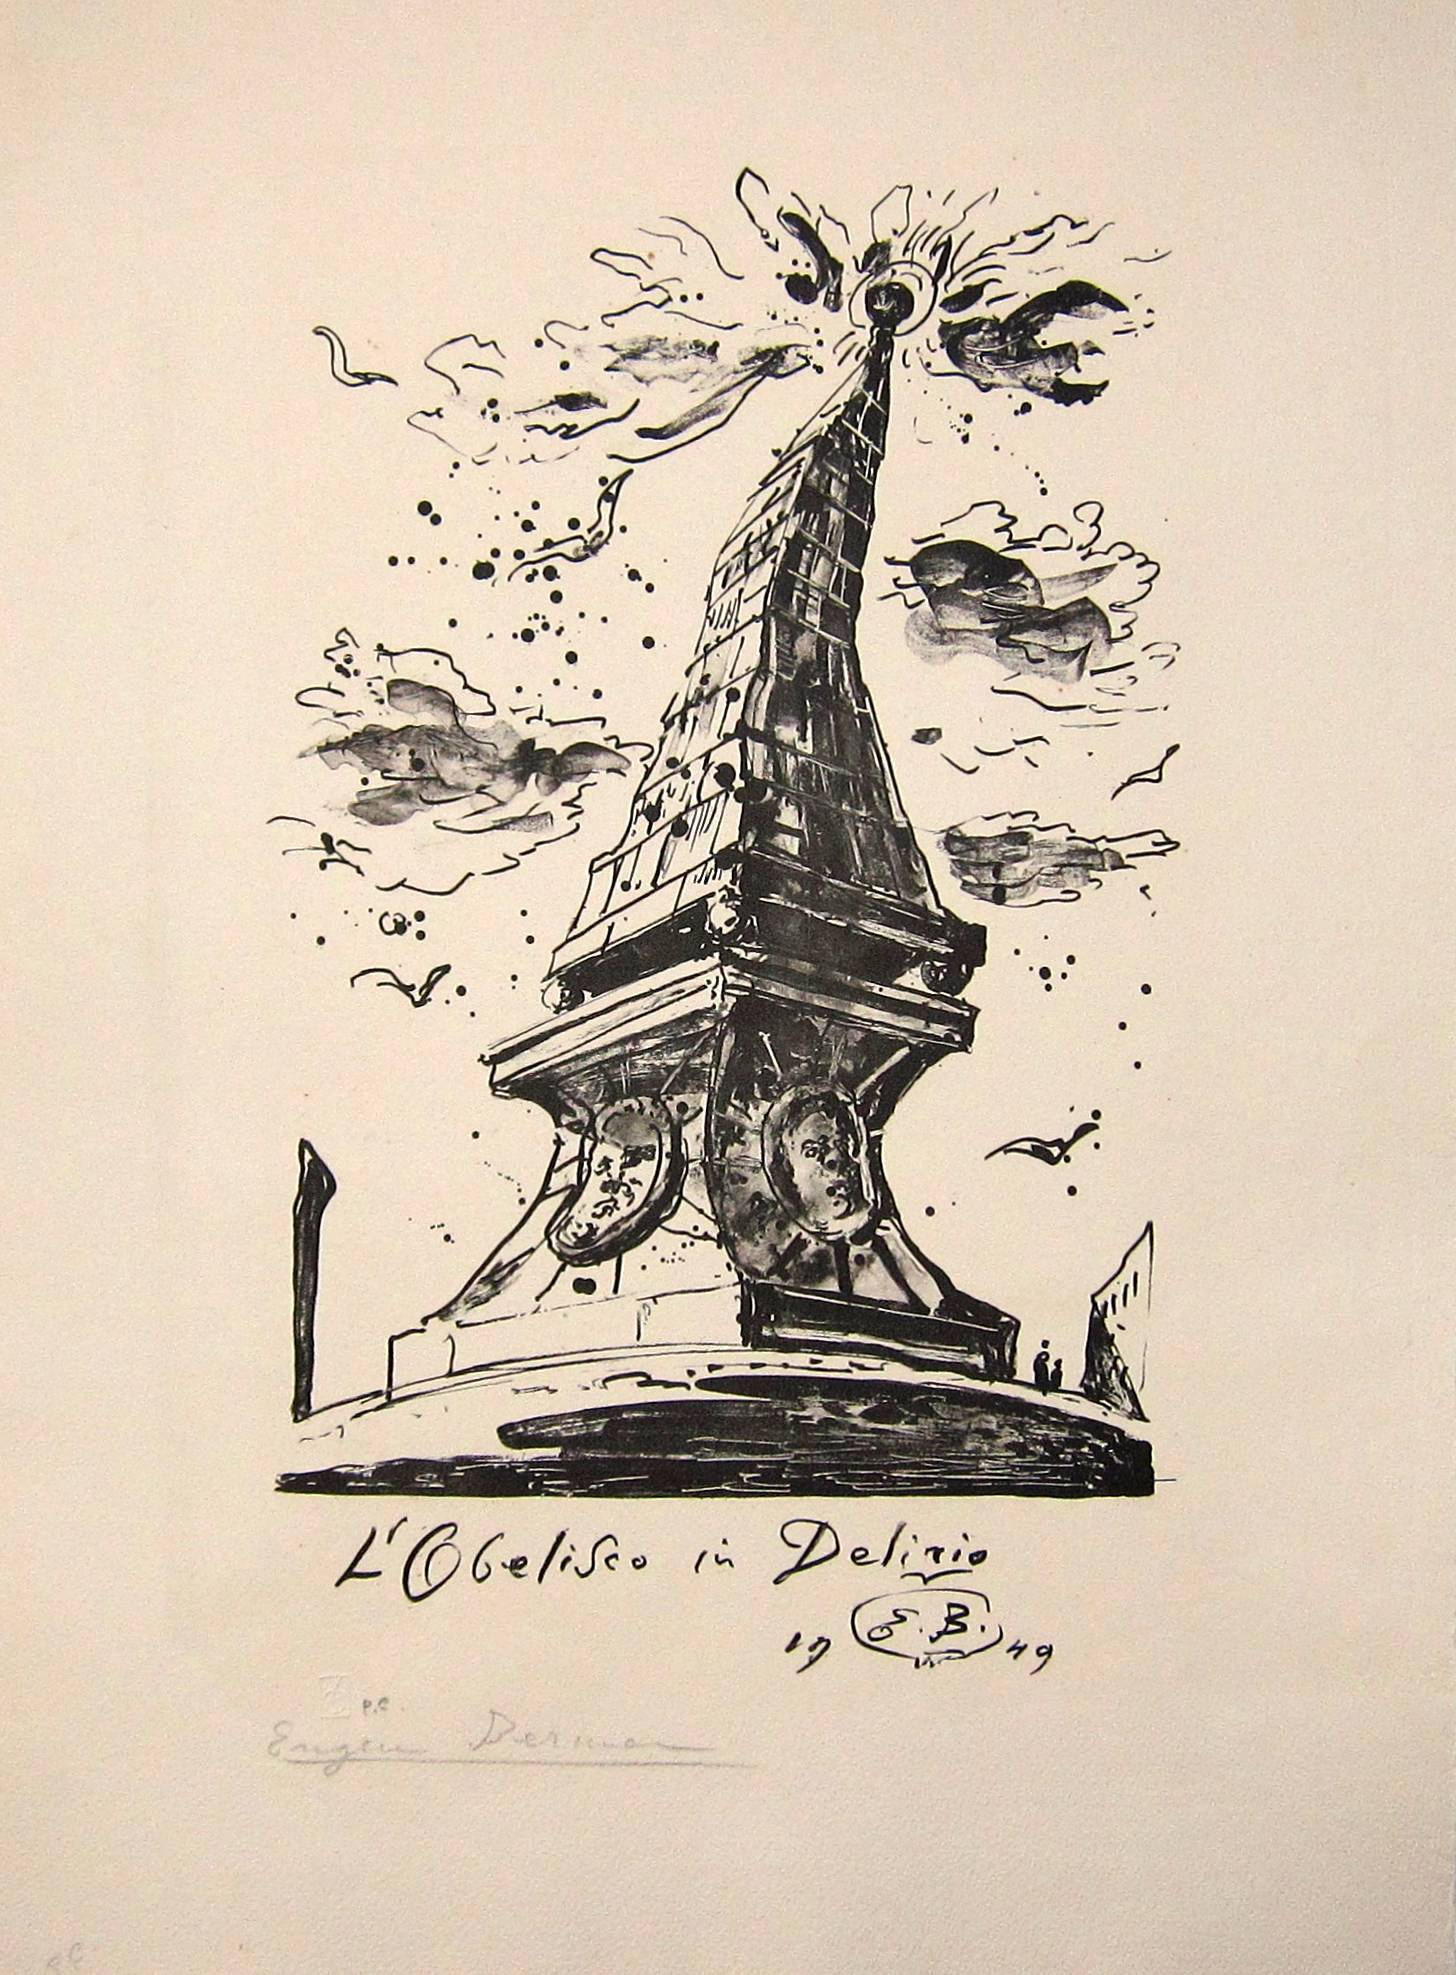 Lot 52 - EUGENE BERMAN [1899-1972]. Obelisk in Delirio, 1949. lithograph, edition of 25, artist's proof.